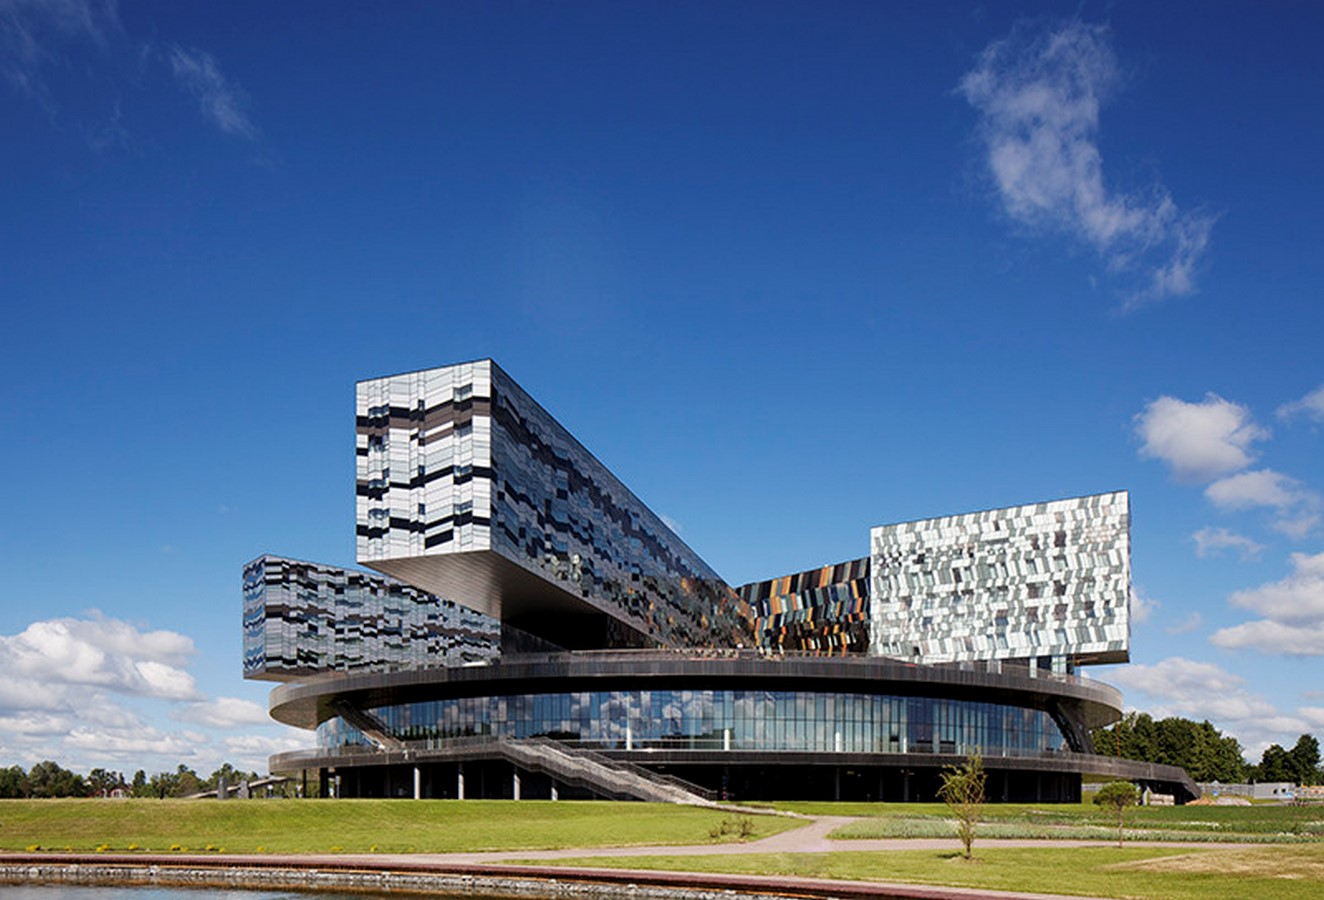 Moscow School of Management, Skolkovo, Russia by David Adjaye- Design inspired by Geometric Abstract Artwork - Sheet4